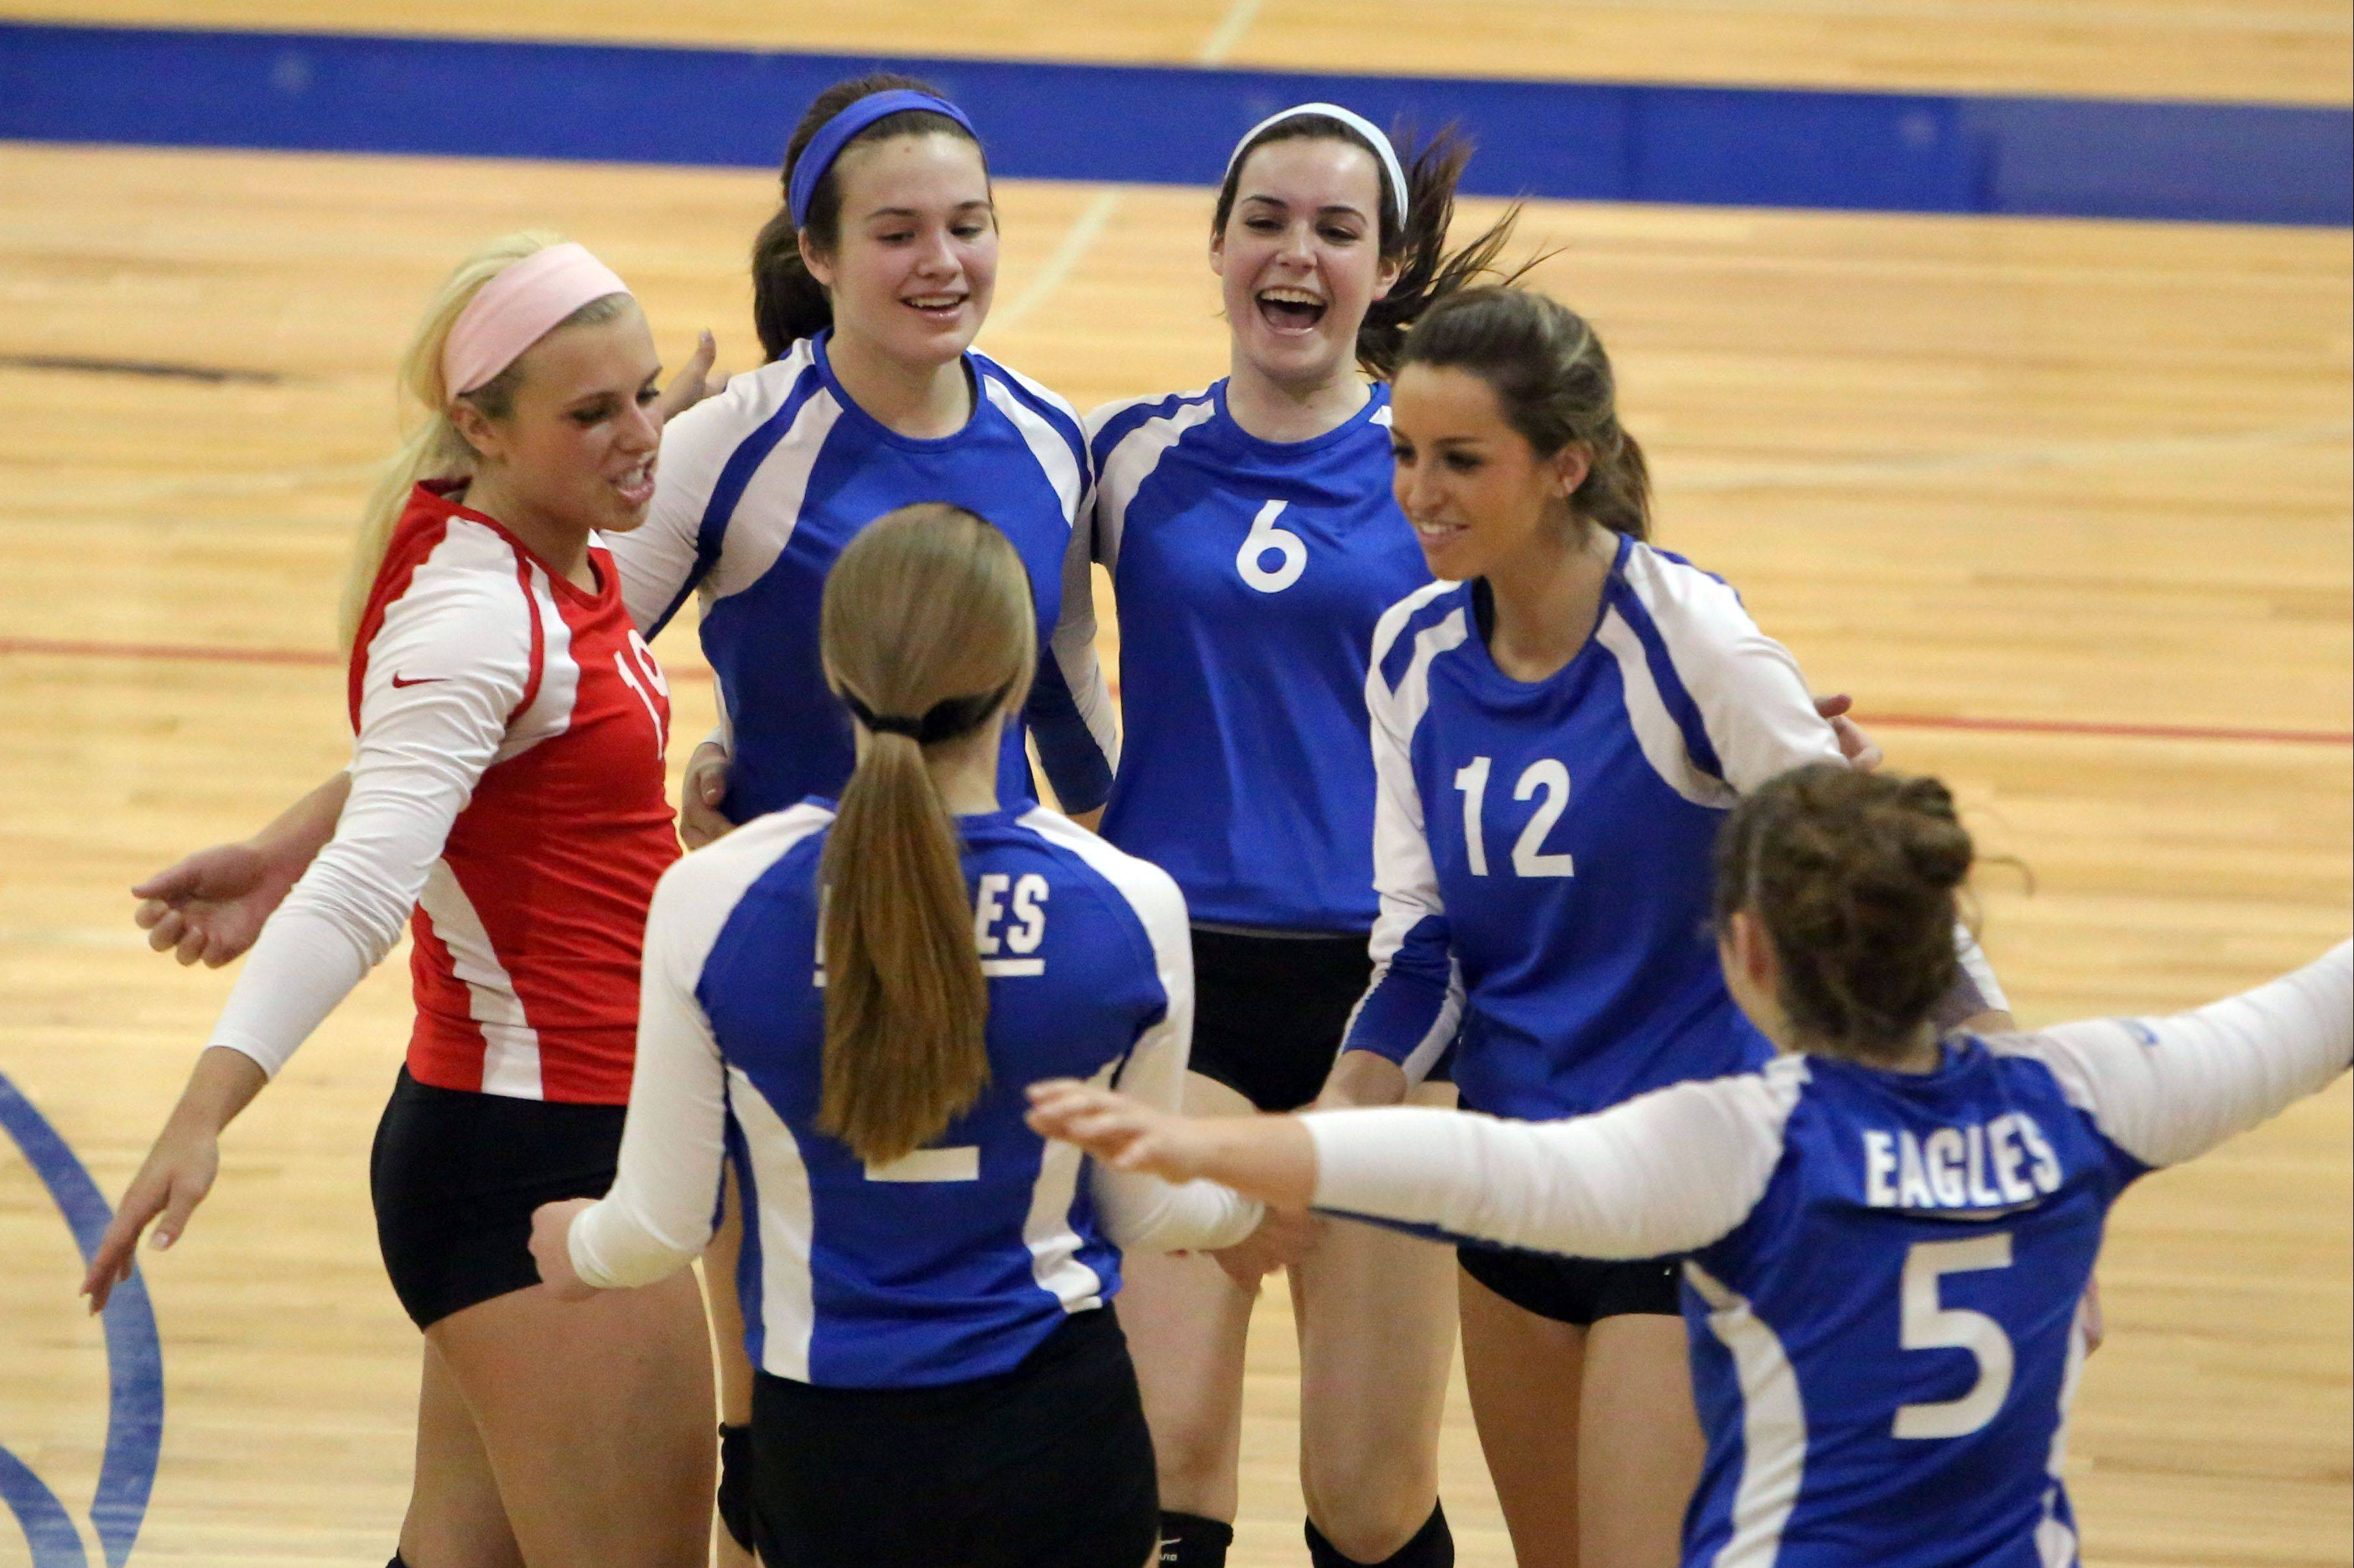 The Lakes team celebrate after beating Wauconda during the girls volleyball regional semifinal game Tuesday at Lakes.